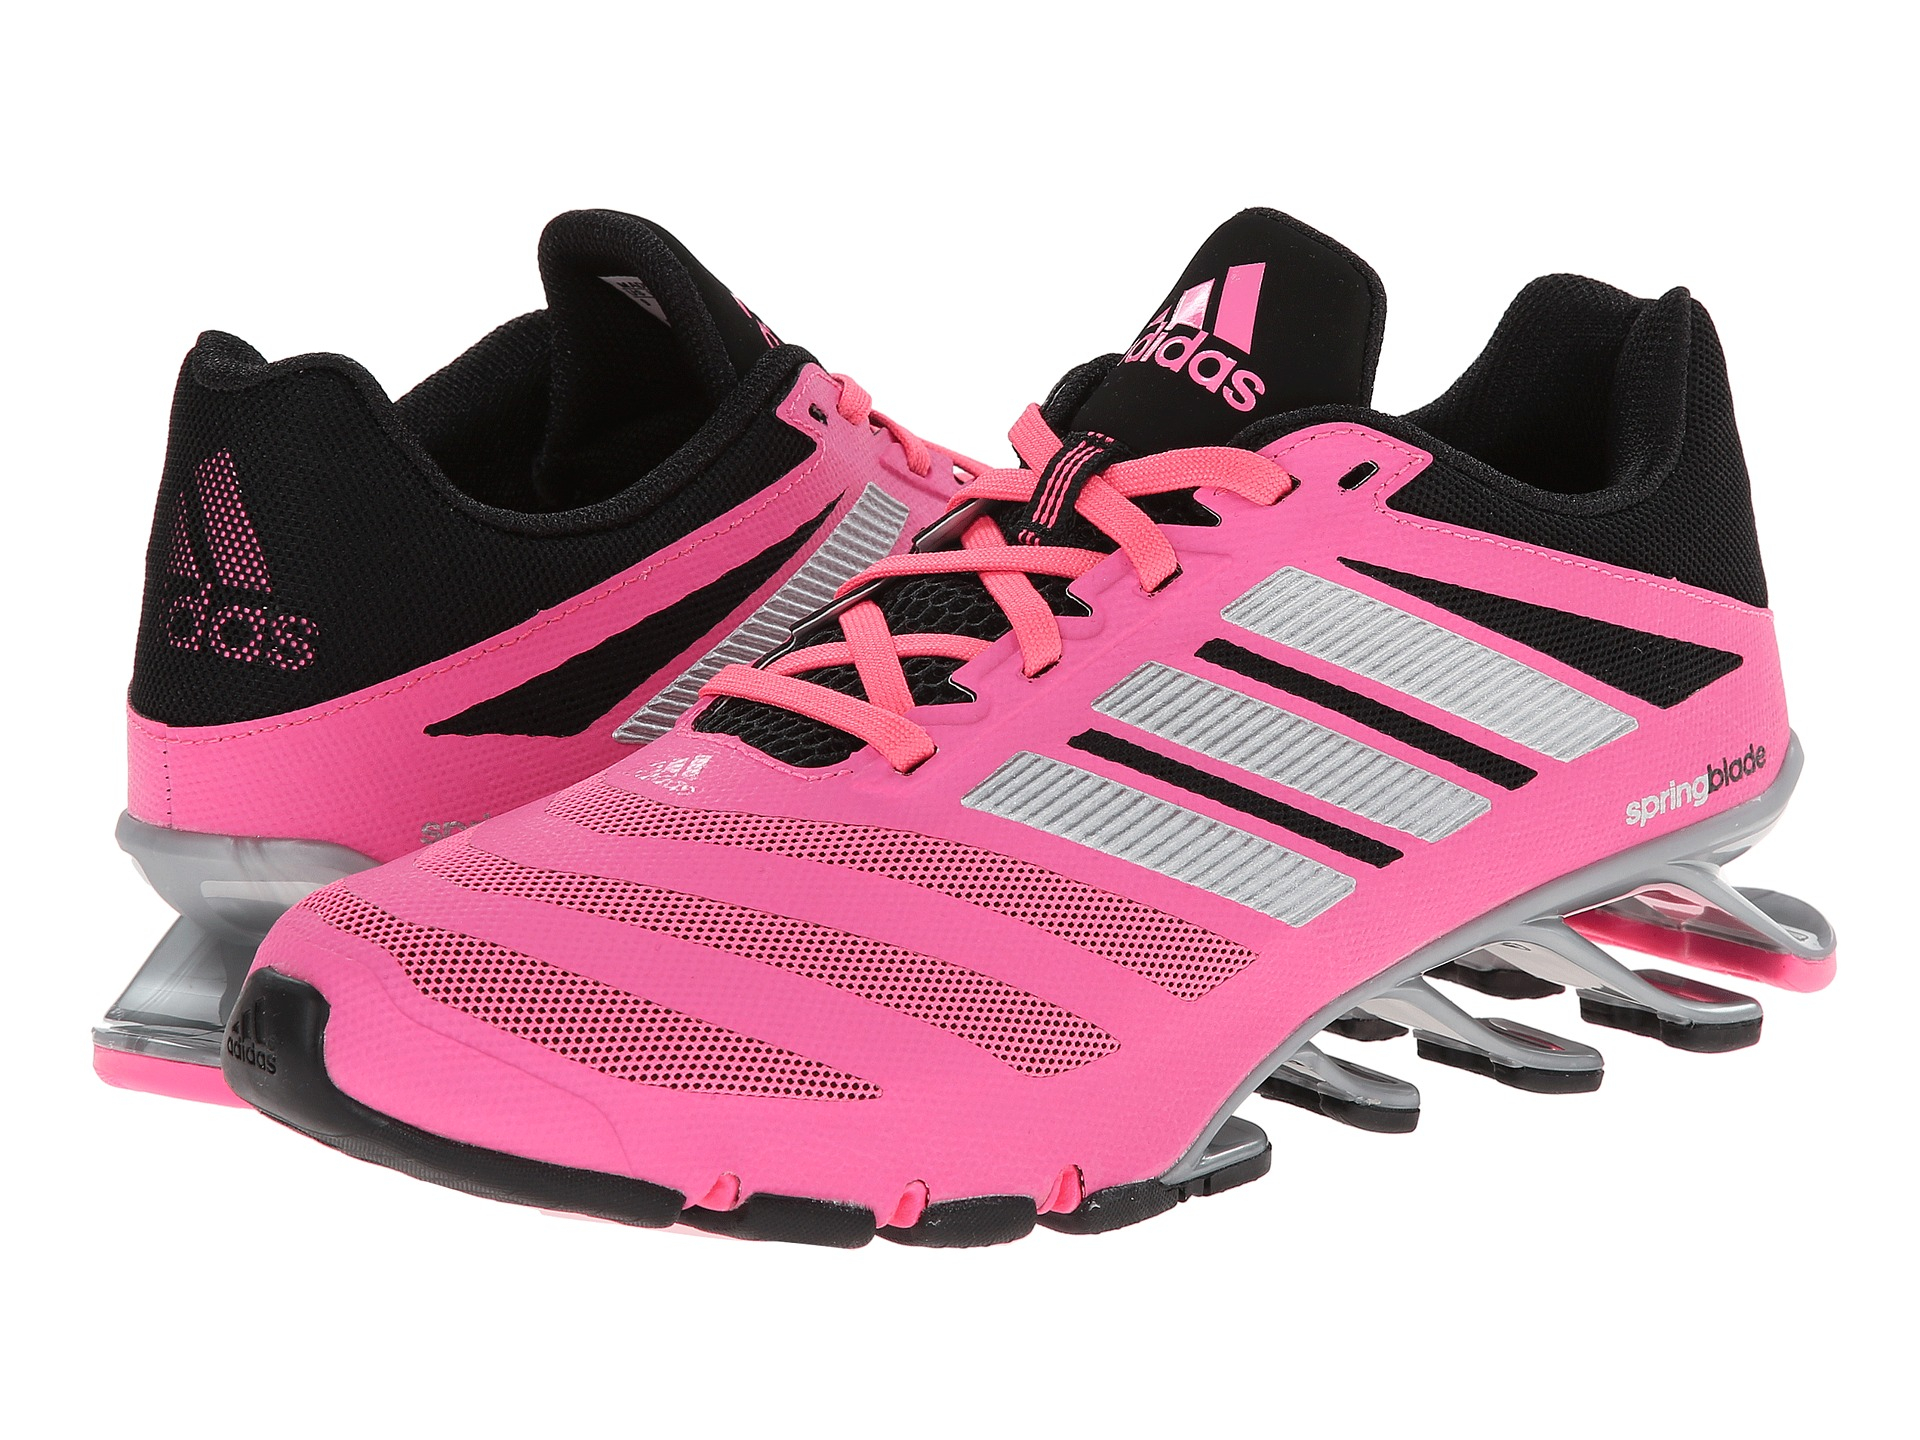 best loved b2bd1 6597d ... germany womens adidas springblade ignite running shoes leeds sale  outlet gallery 76c0c b37e7